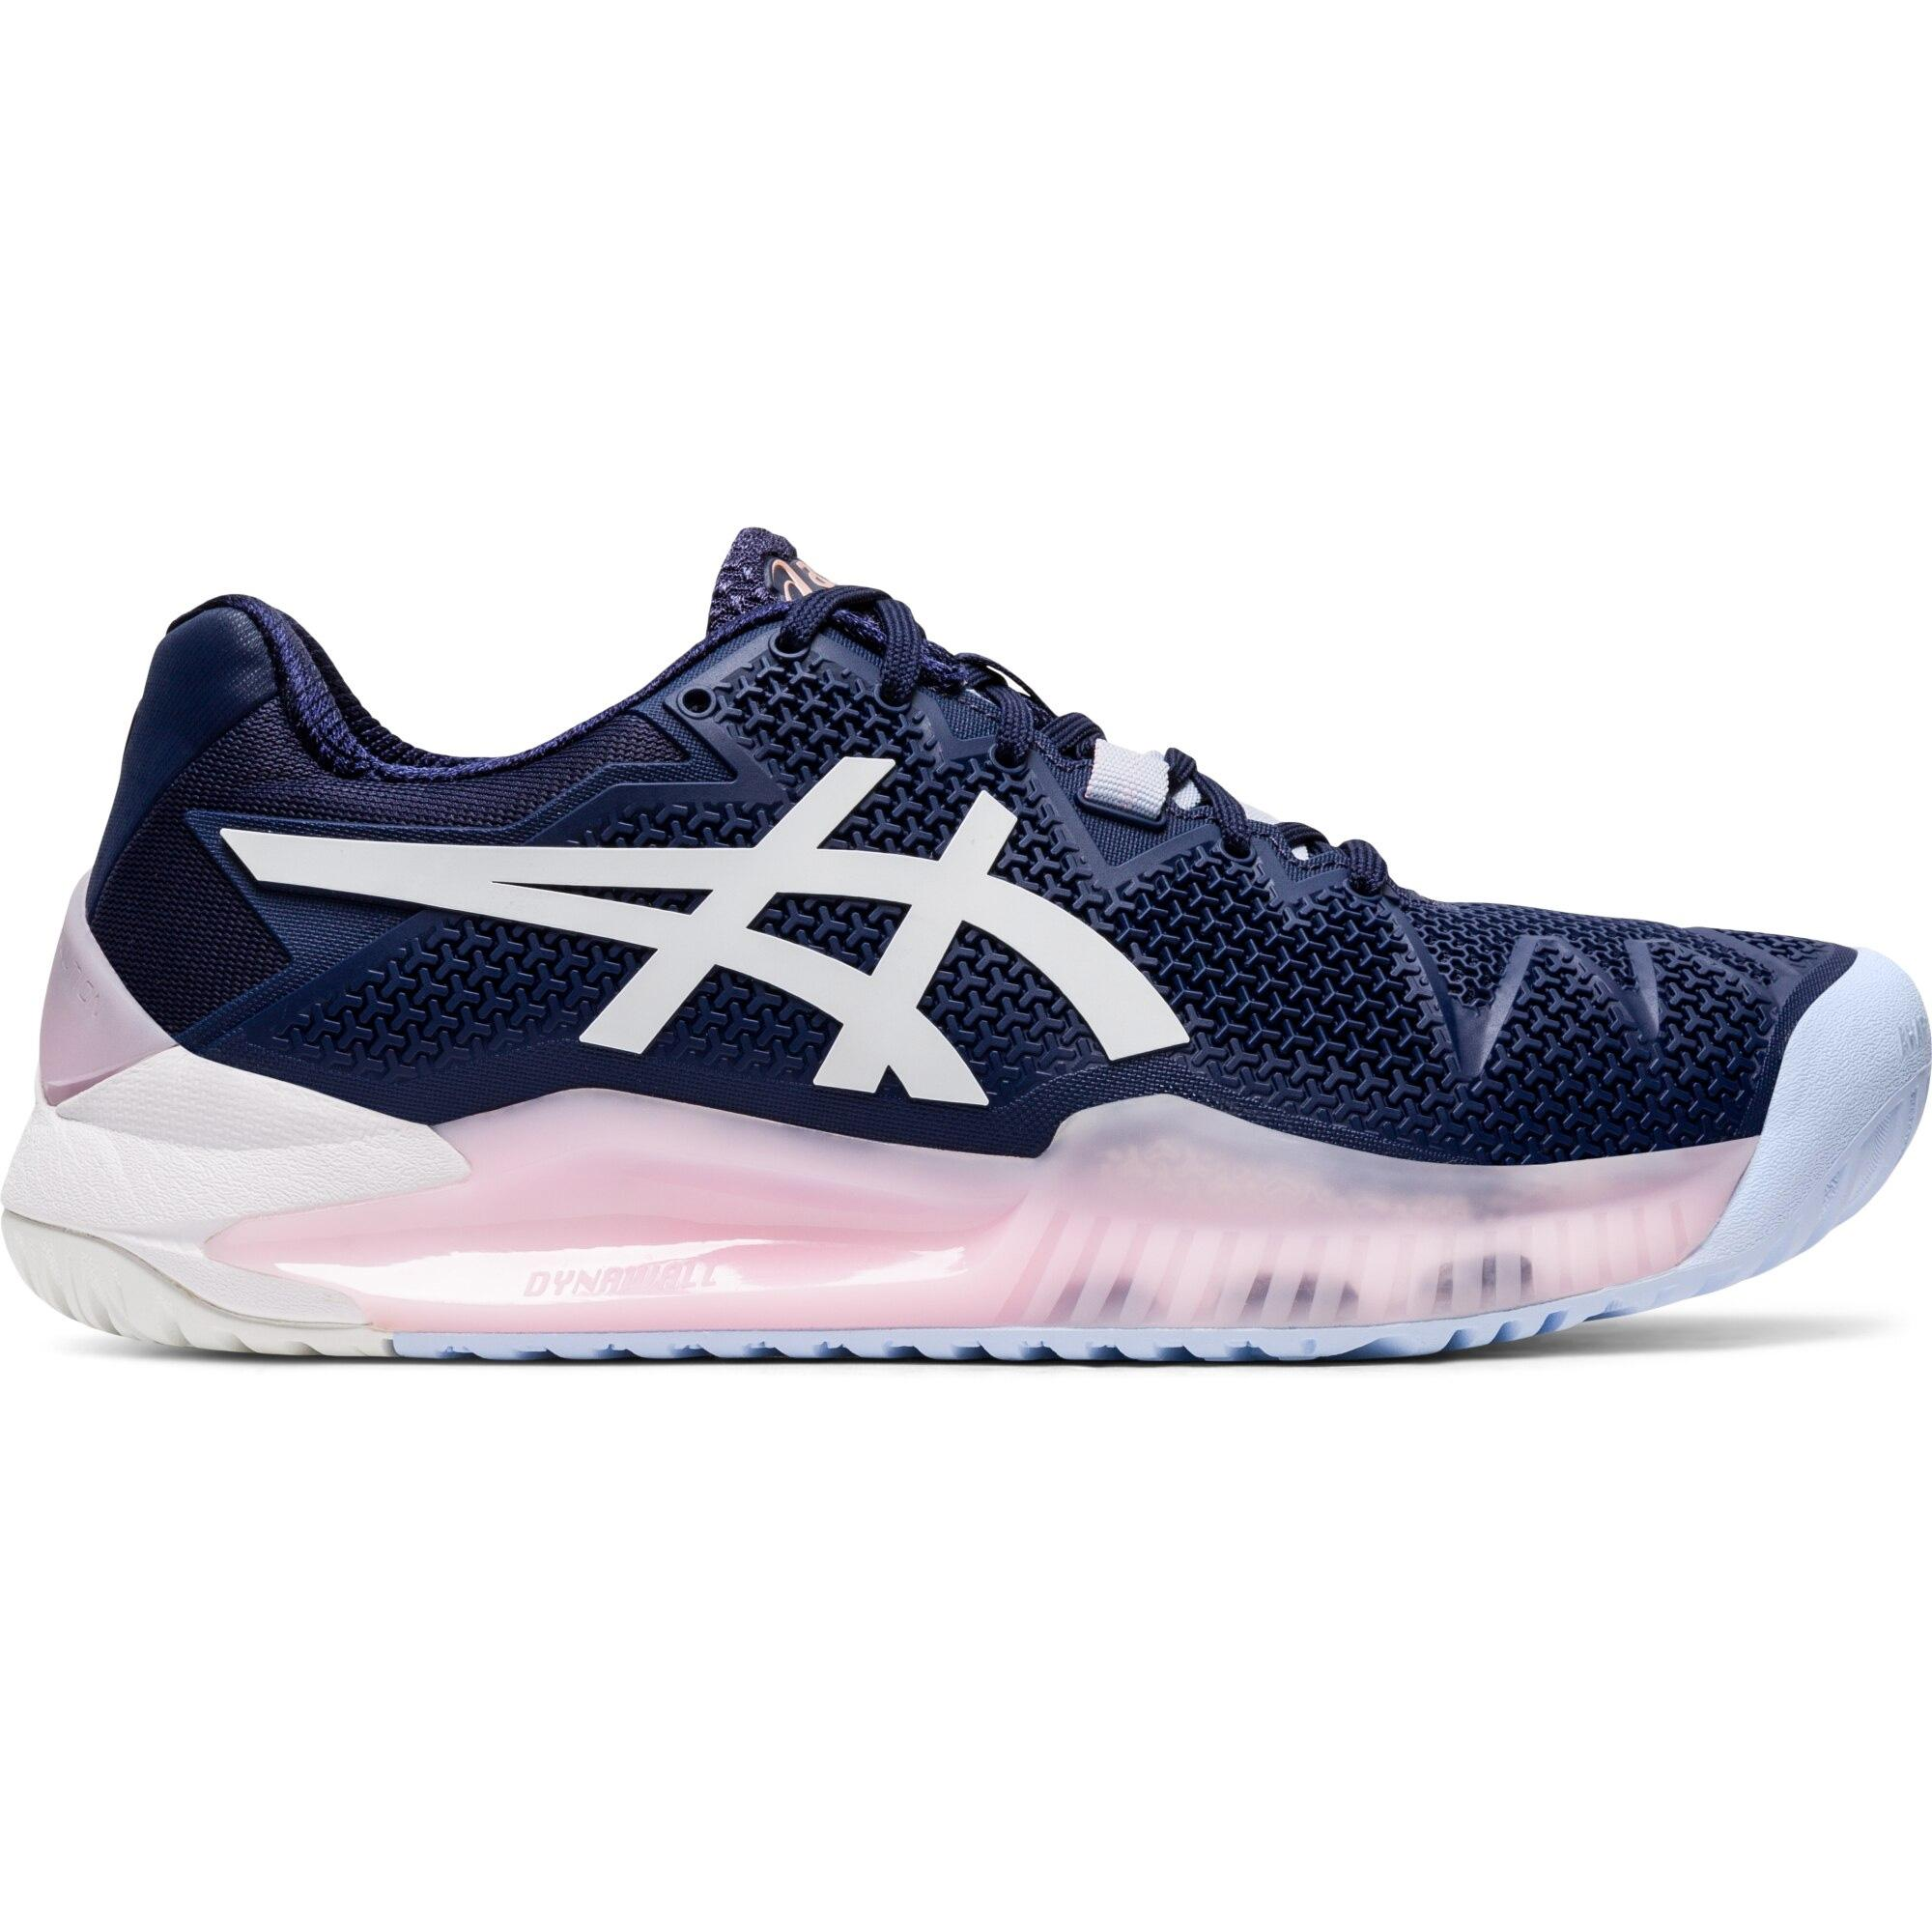 who sells asics tennis shoes